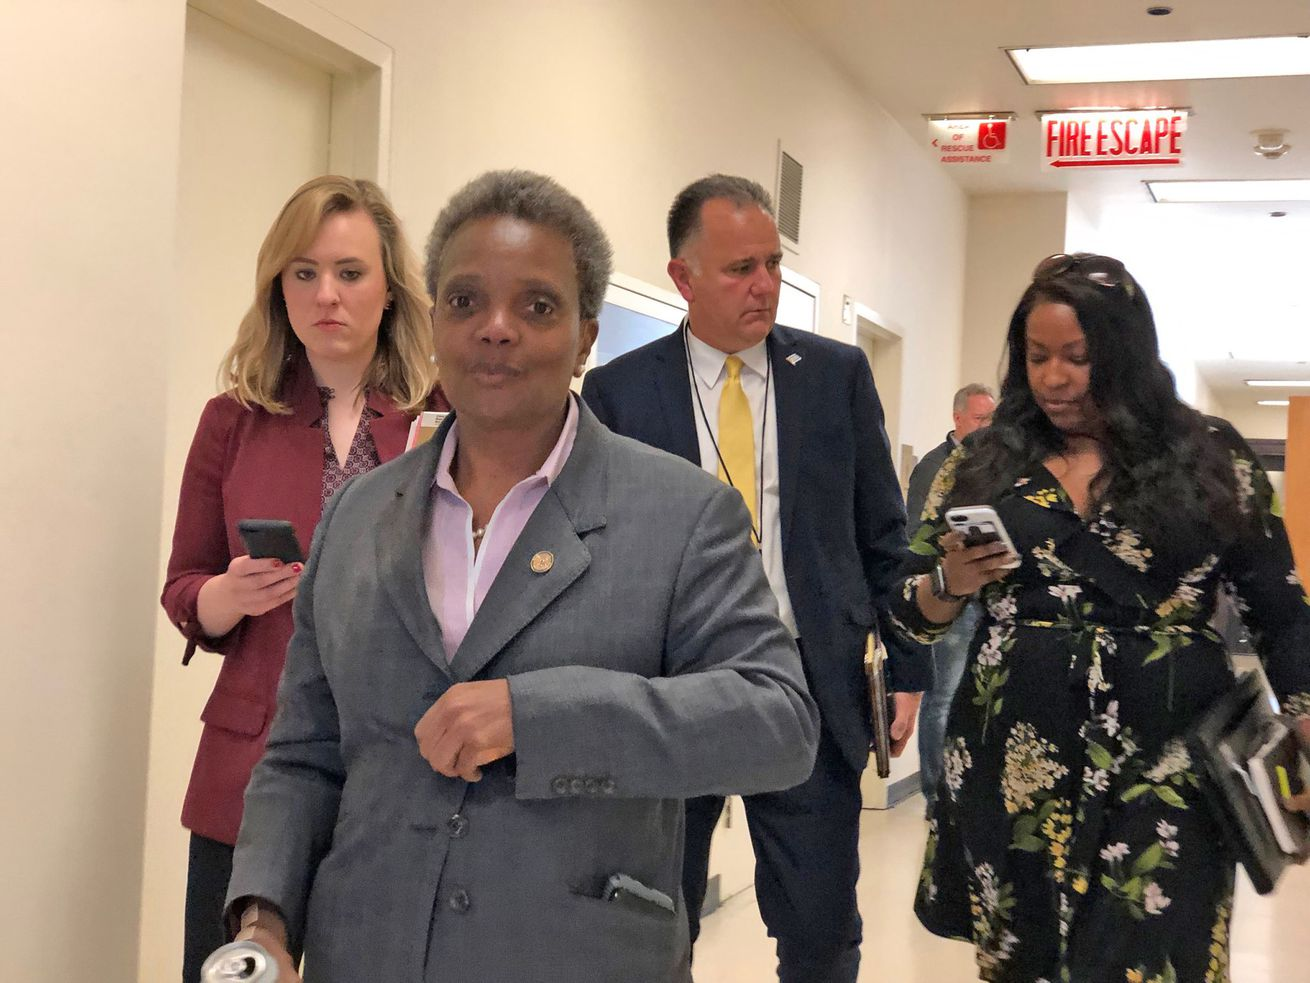 Mayor Lori Lightfoot wrapping up her first cabinet meeting.